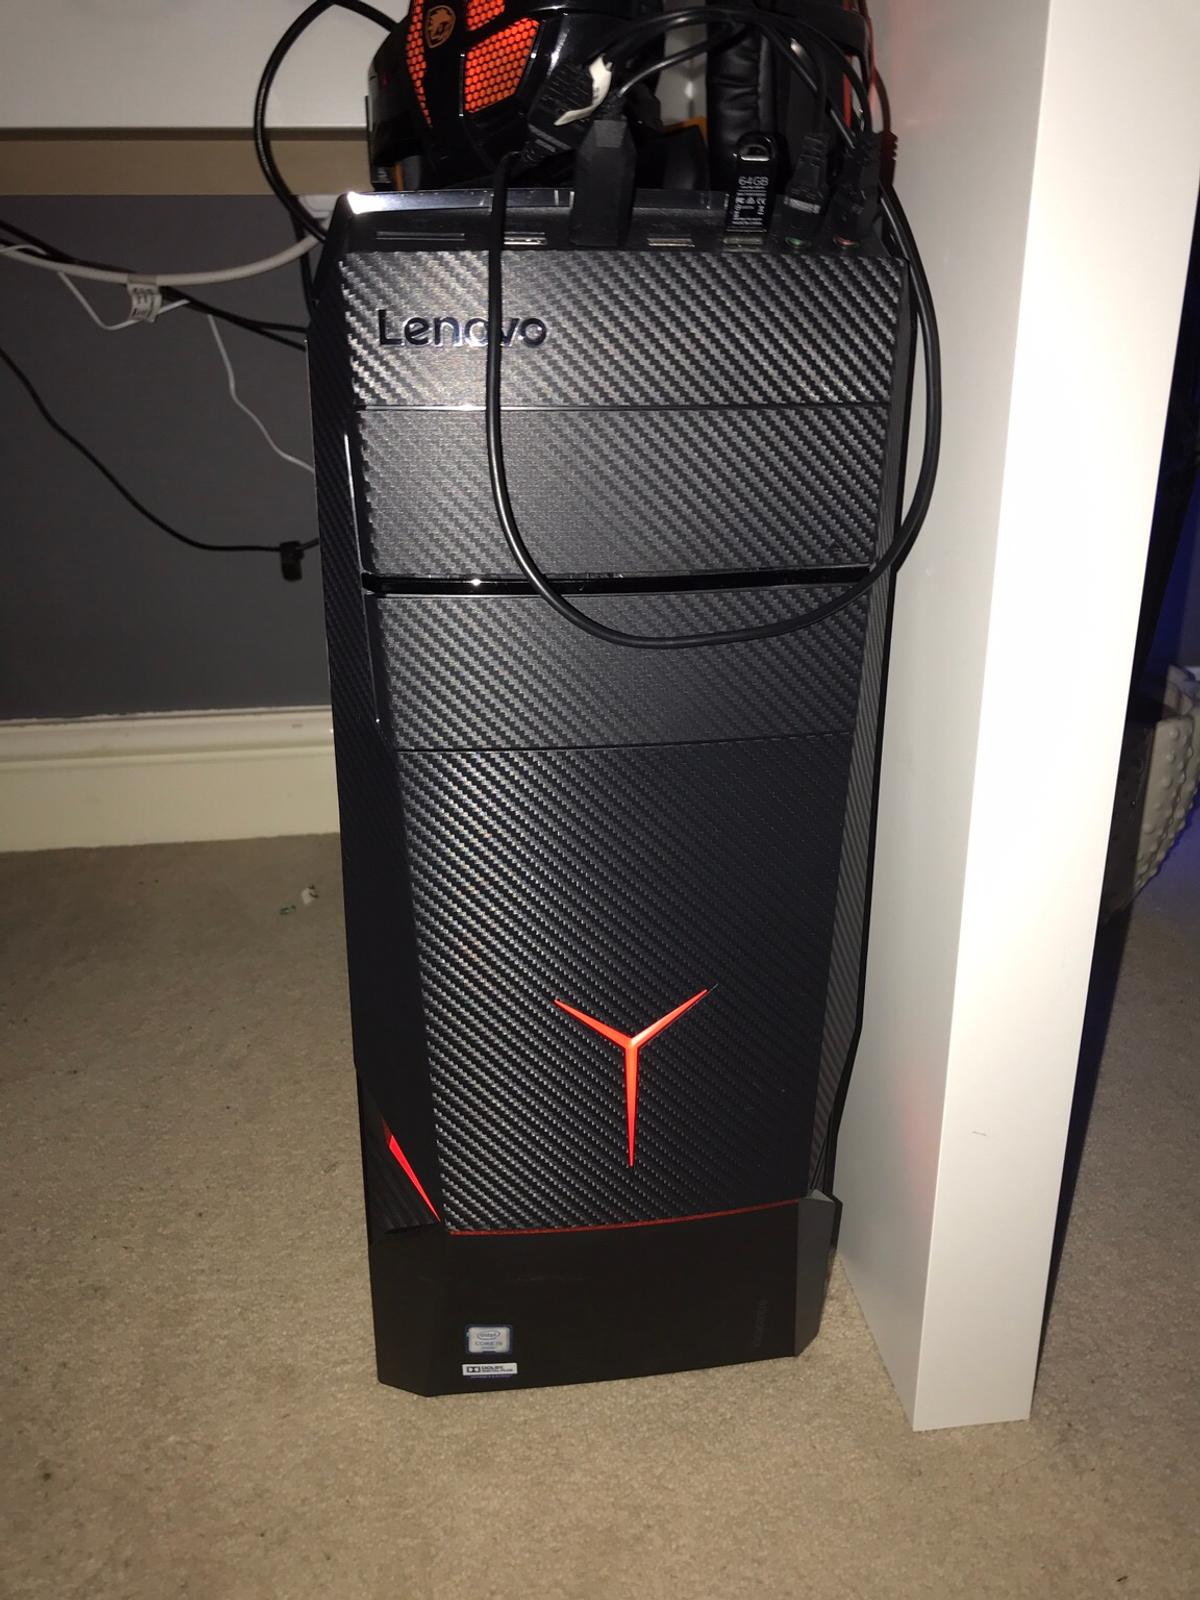 Lenovo y series gaming desktop pc in Newark and Sherwood for £300 00